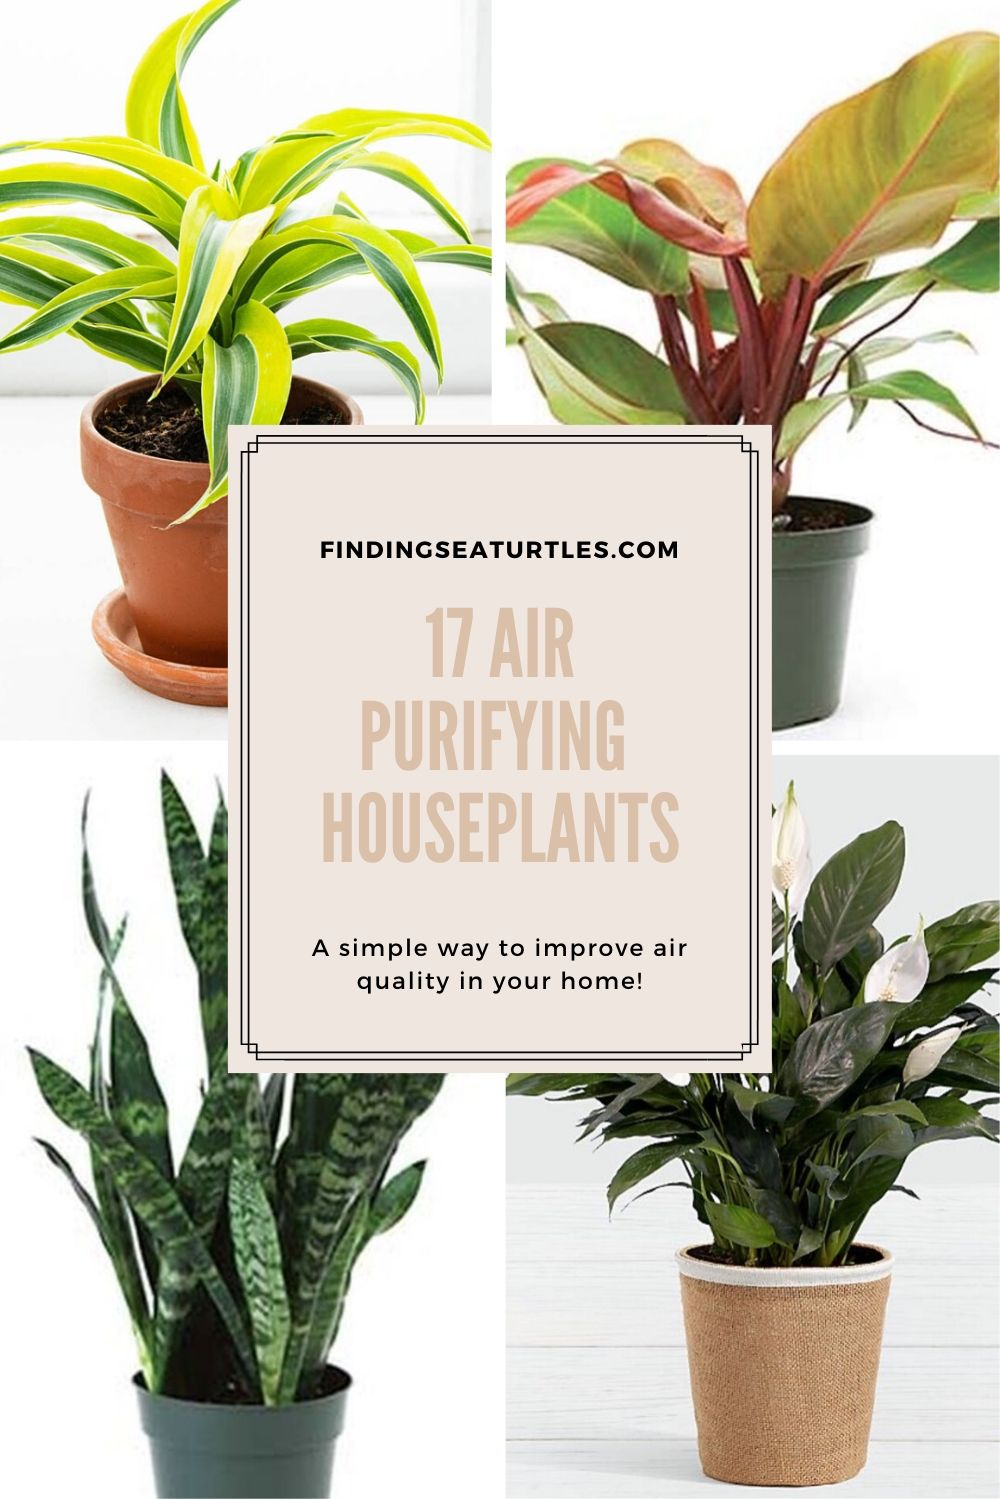 17 Air Purifying Houseplants A simple way to improve air quality in your home #HousePlants #AirCleaningPlants #AirPurifyingPlants #AirPurifyingHousePlants #IndoorPlants #CleanAir